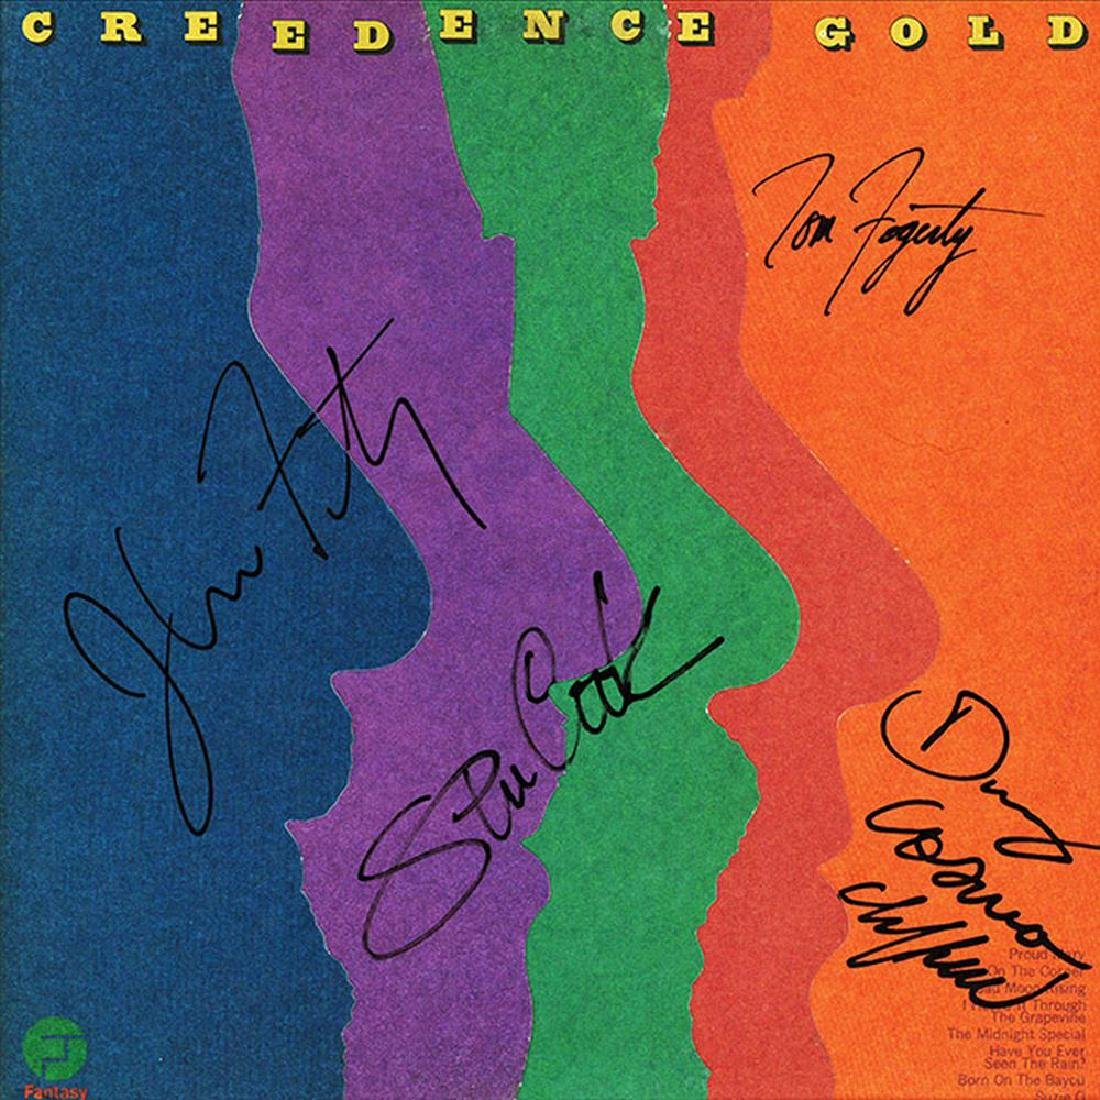 Creedence Clearwater Revival Band Signed Creedence Gold